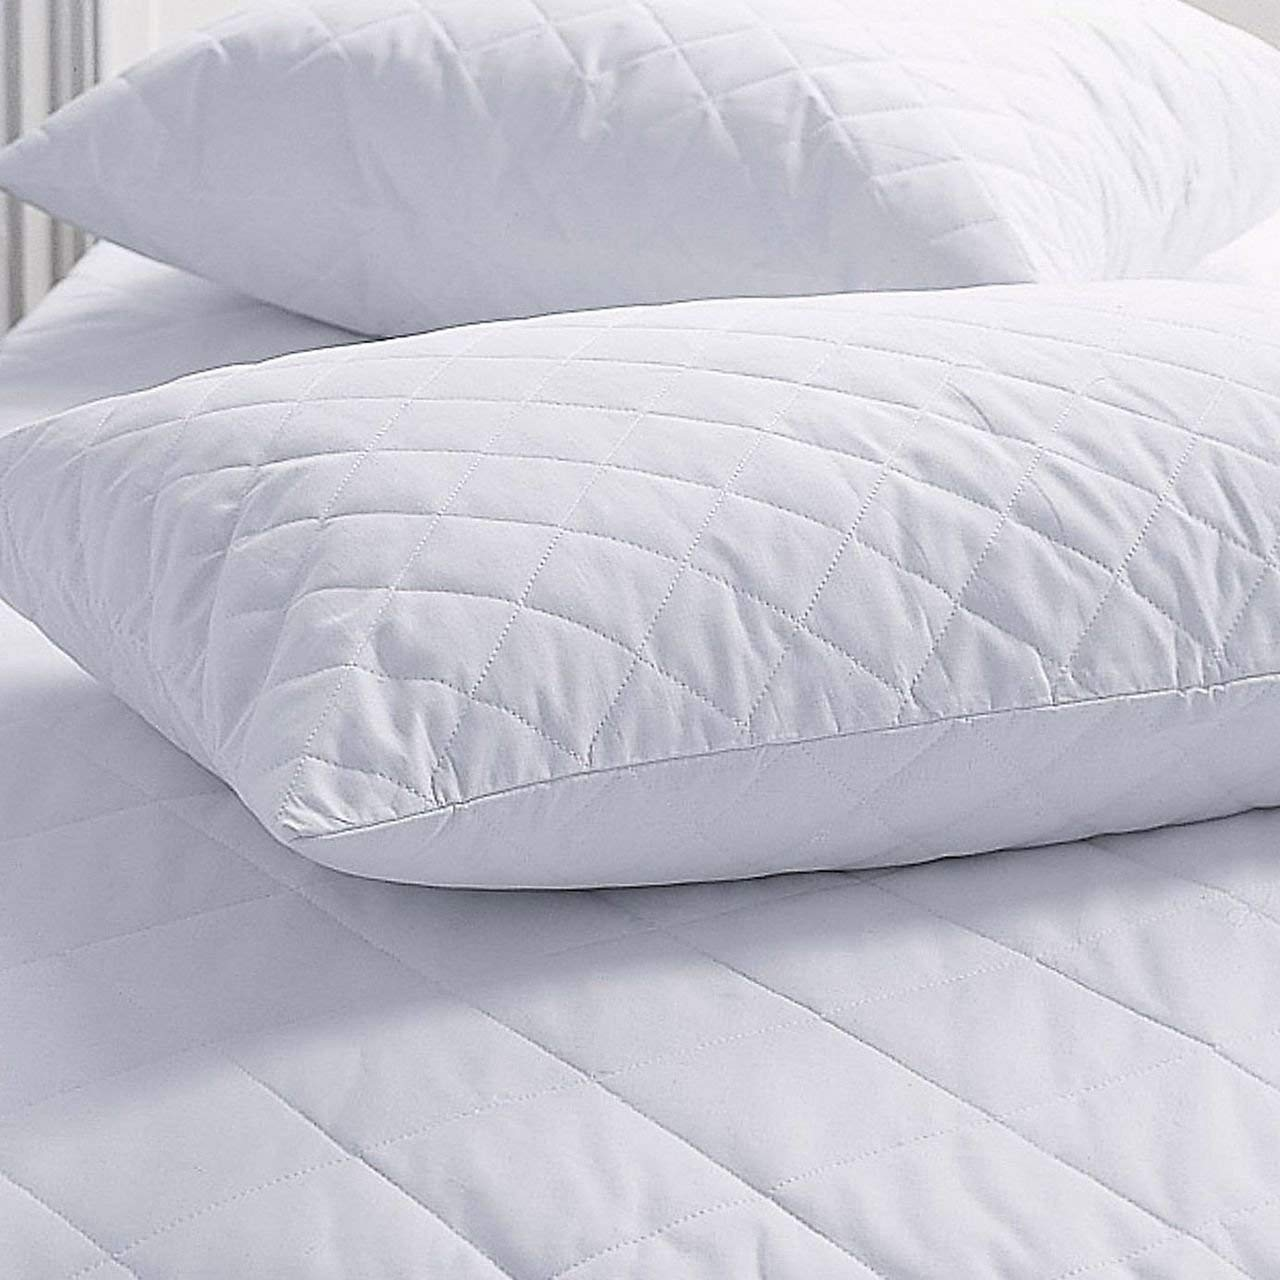 Poly Cotton Quilted Pillow Protectors